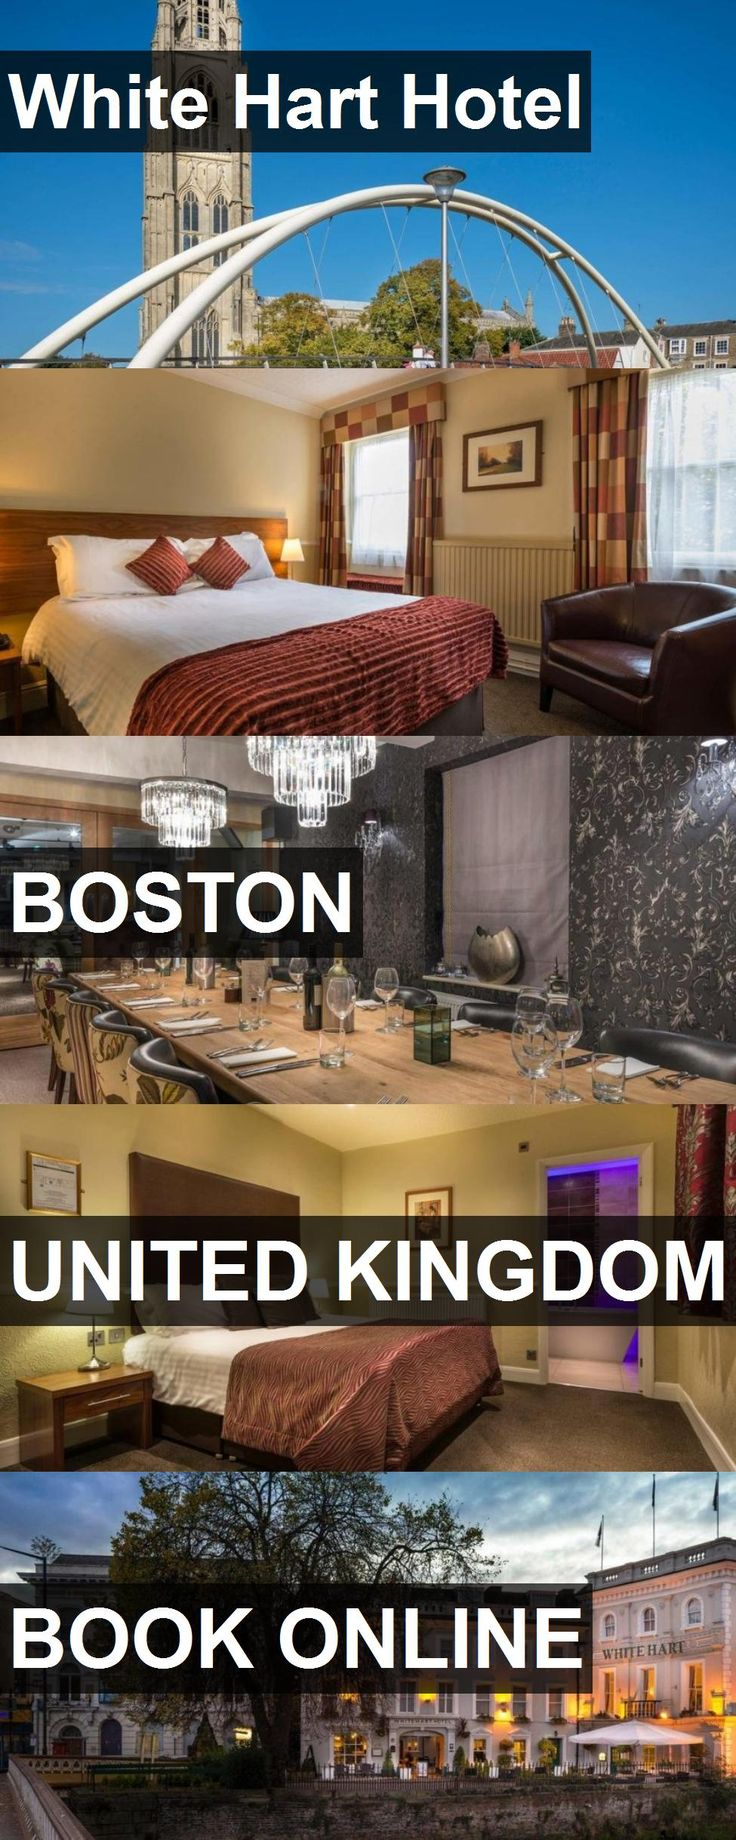 Hotel White Hart Hotel in Boston, United Kingdom. For more information, photos, reviews and best prices please follow the link. #UnitedKingdom #Boston #WhiteHartHotel #hotel #travel #vacation